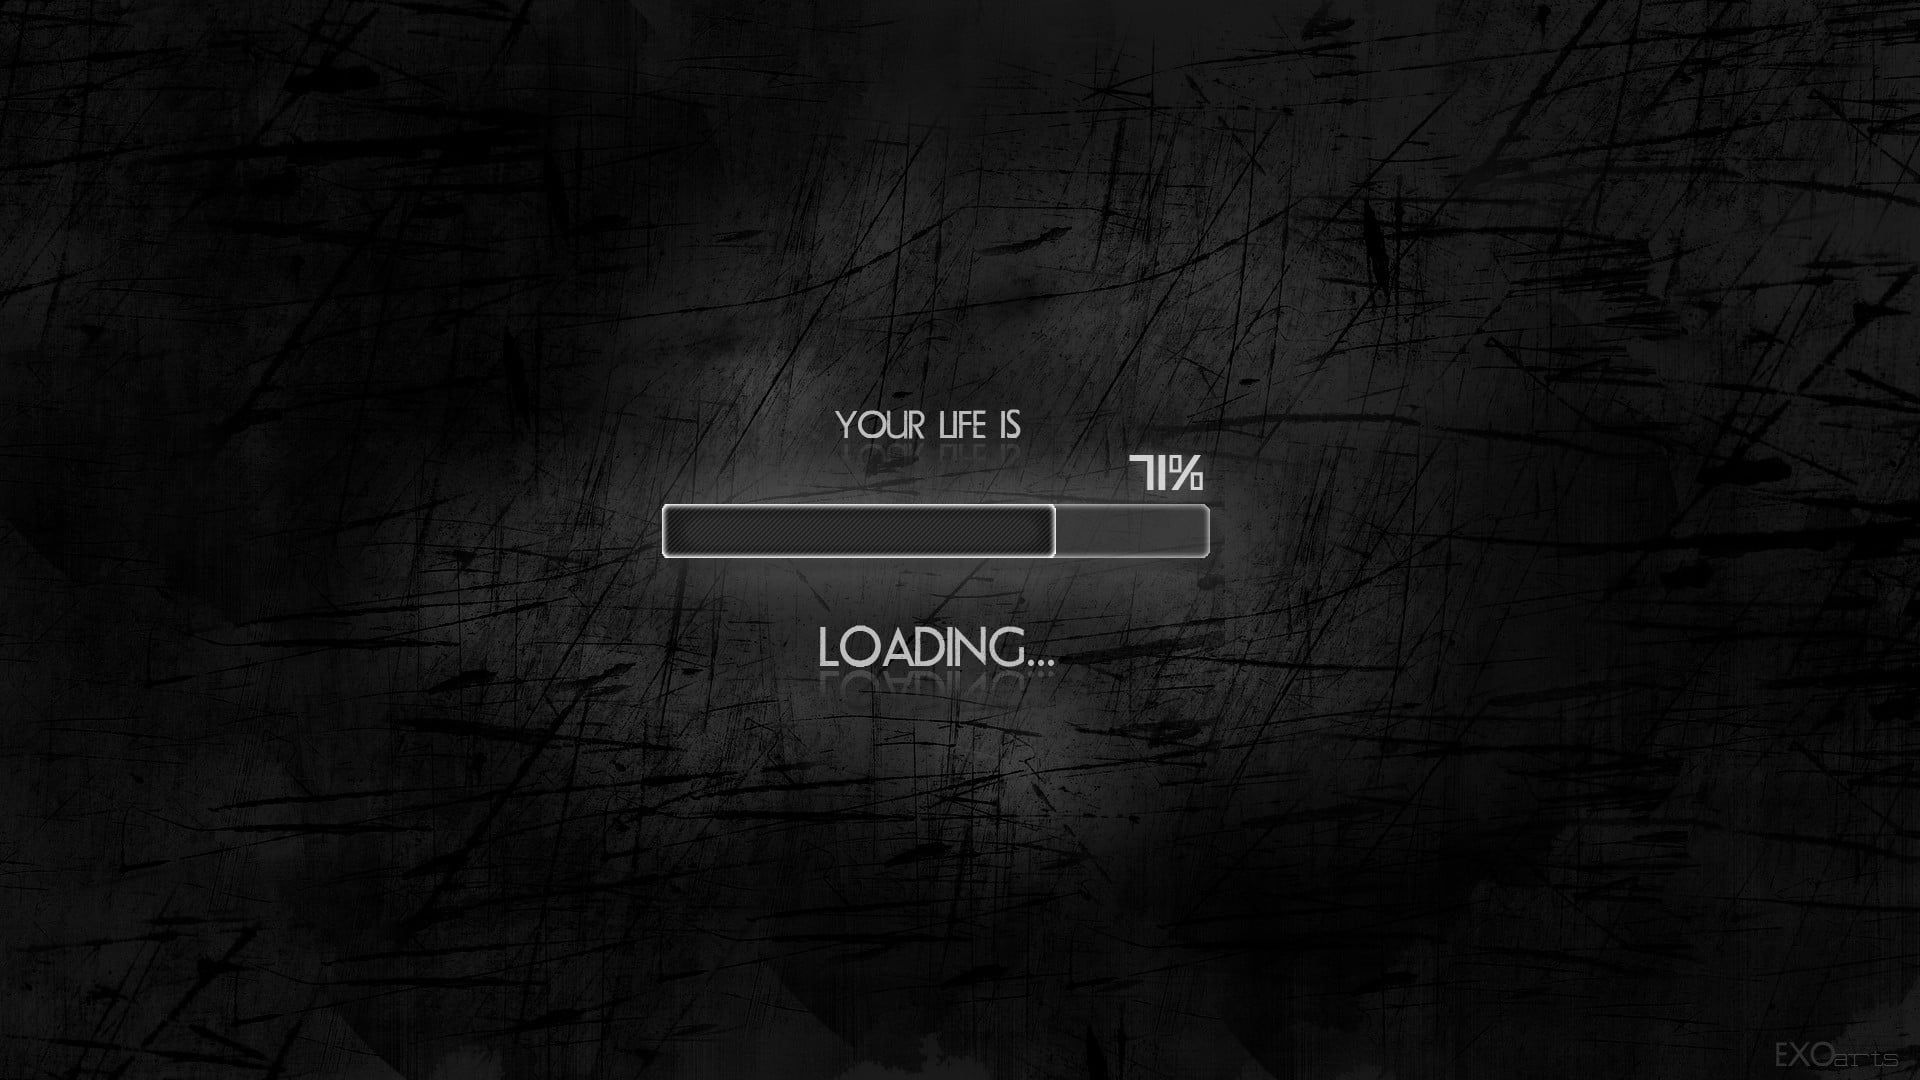 Your Life Is Loading Text Black Minimalism Humor Simple Background Typography Digital A In 2020 Desktop Wallpaper Motivational Wallpapers Hd Motivational Wallpaper